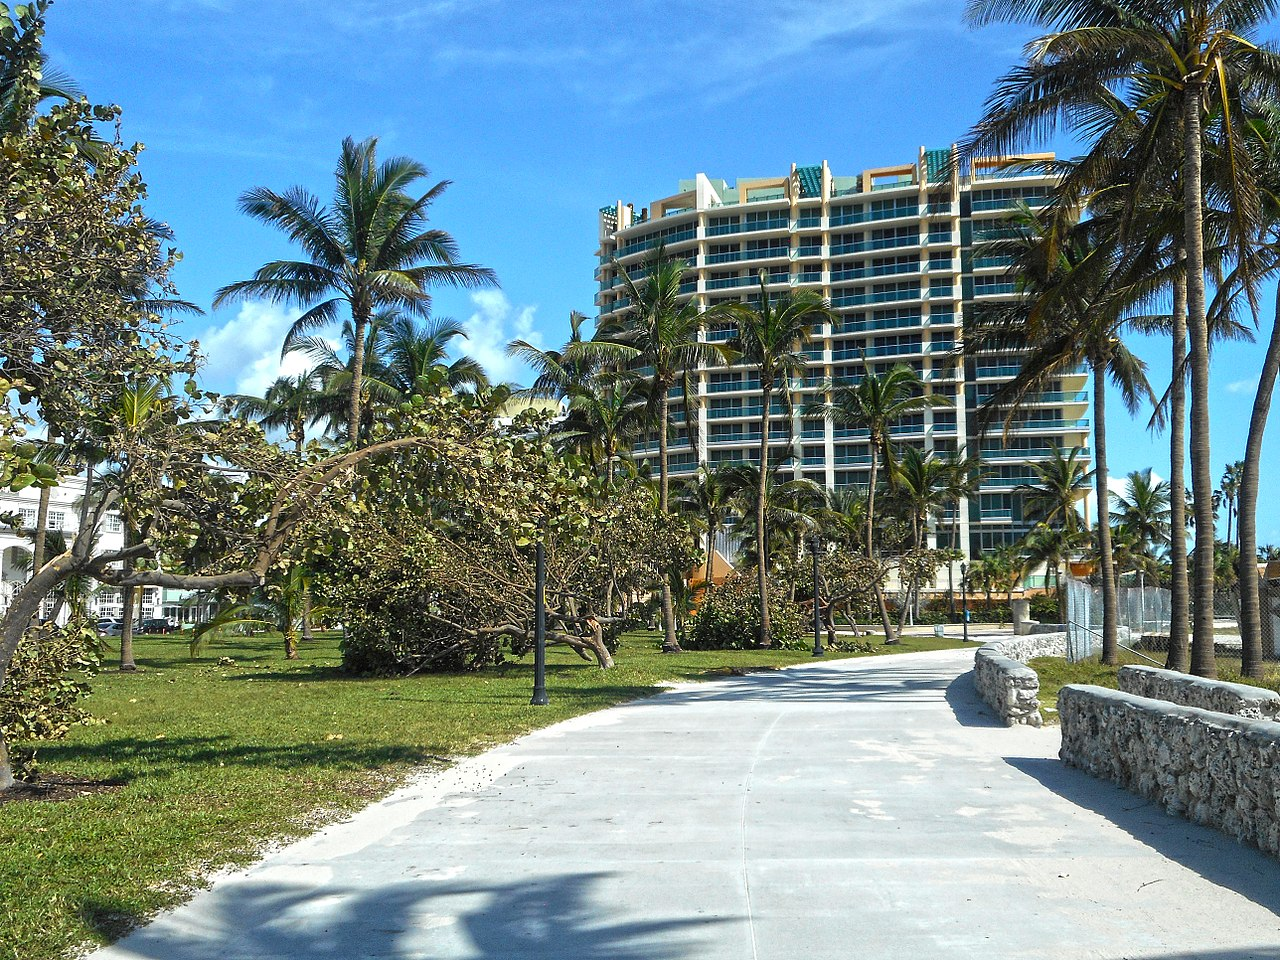 bent tress in miami beach after hurricane irma